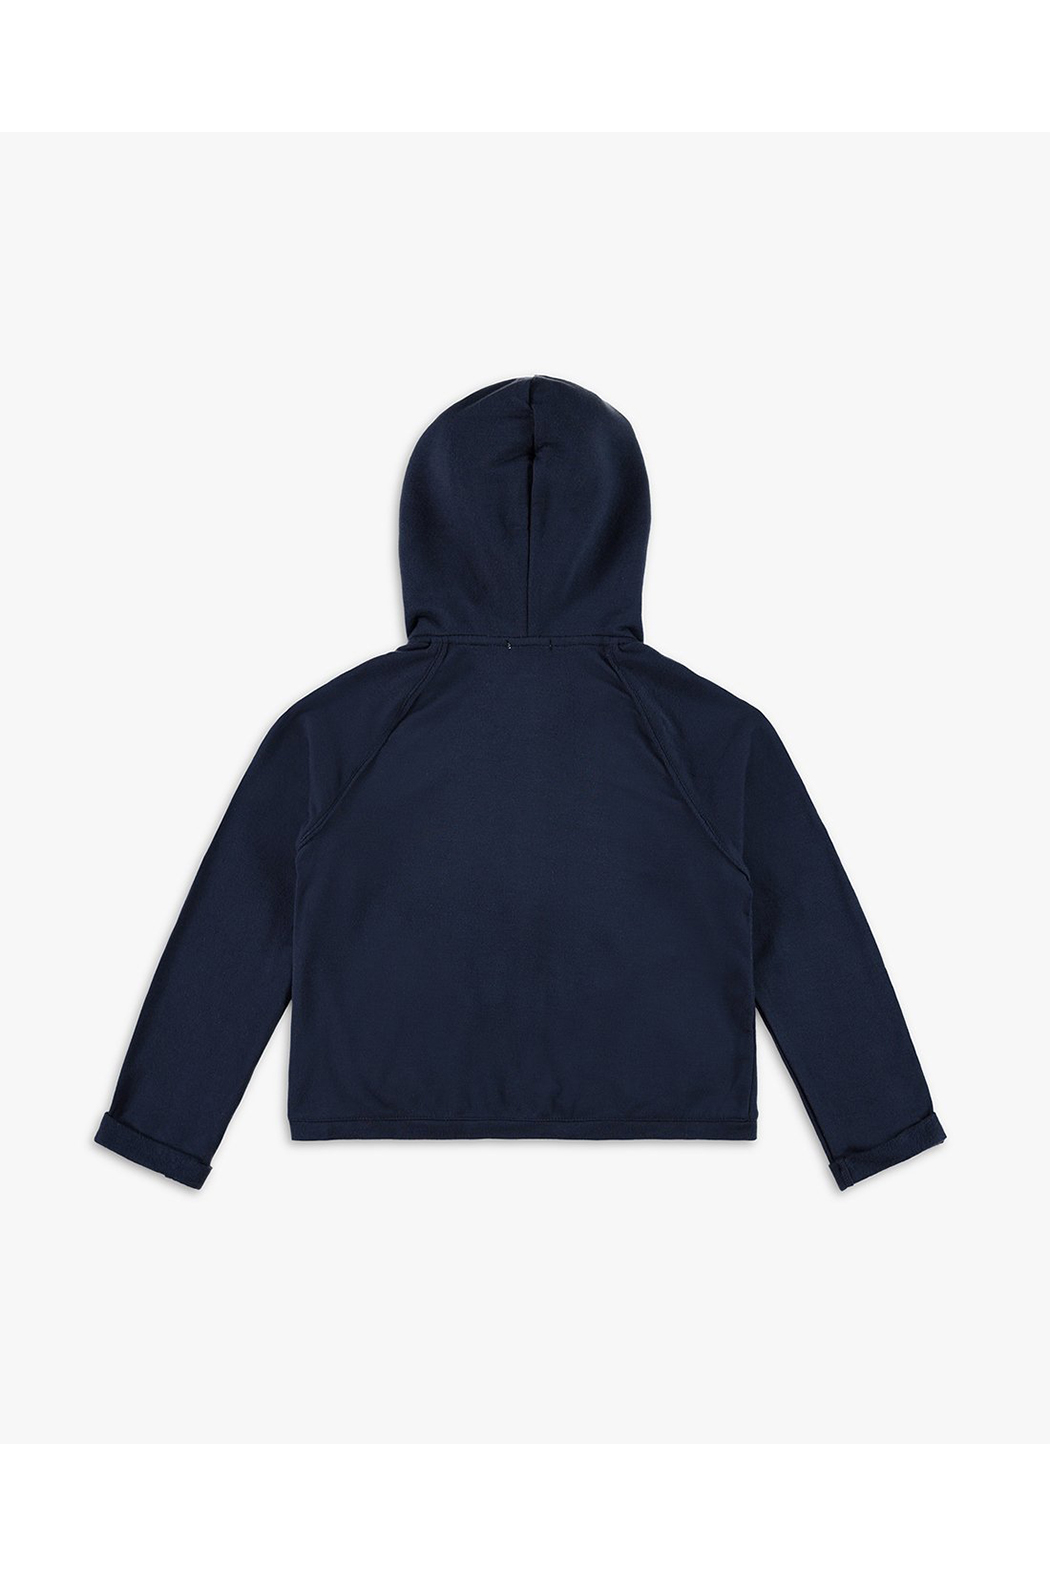 Splendid Super Soft French Terry Hoodie - Front Full Image